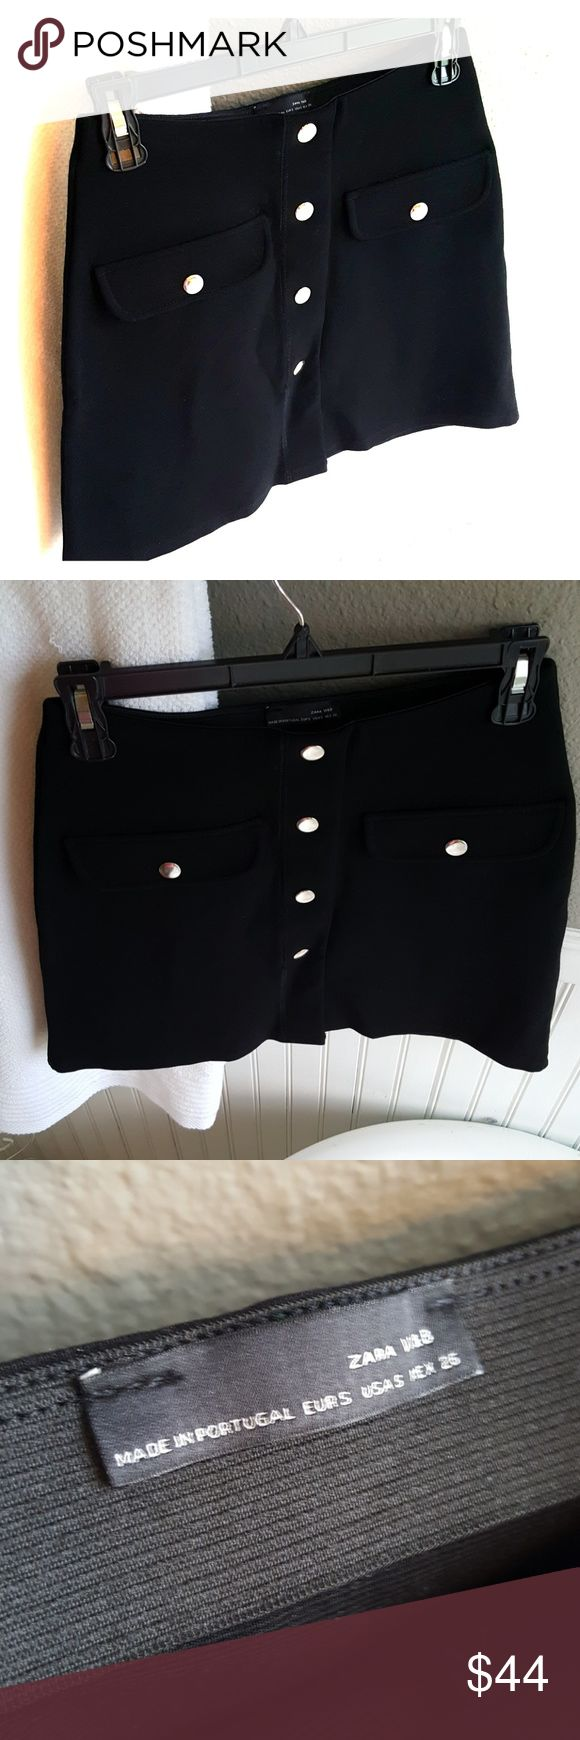 NWOT Zara Skirt! Selling a NWOT Zara Skirt! Super cute skirt! This can go with anything! Gorgeous material, very stretchy, buttons down front, US size small. Zara Skirts